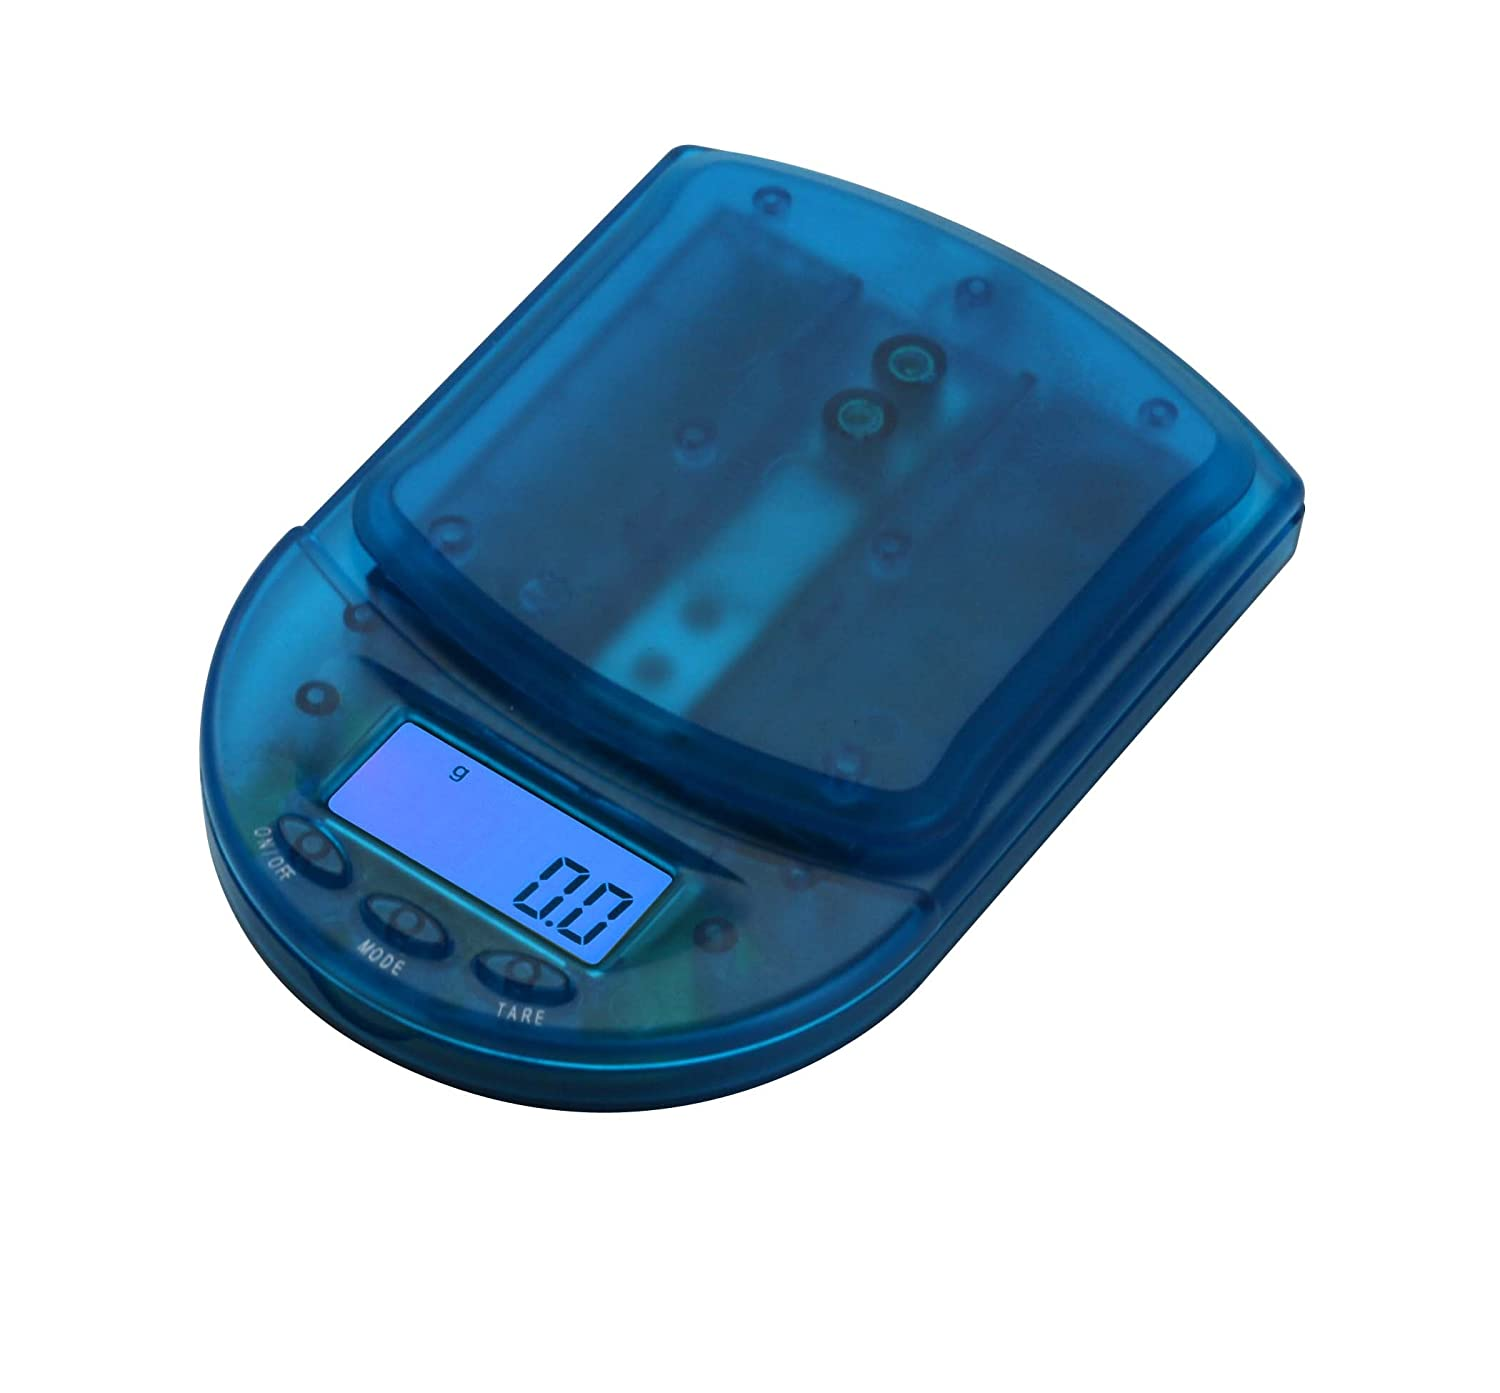 ccf4fb4fe259 American Weigh Scales BCM-650-CB Pocket Size Digital Scale, 650gm Capacity,  Clear Blue